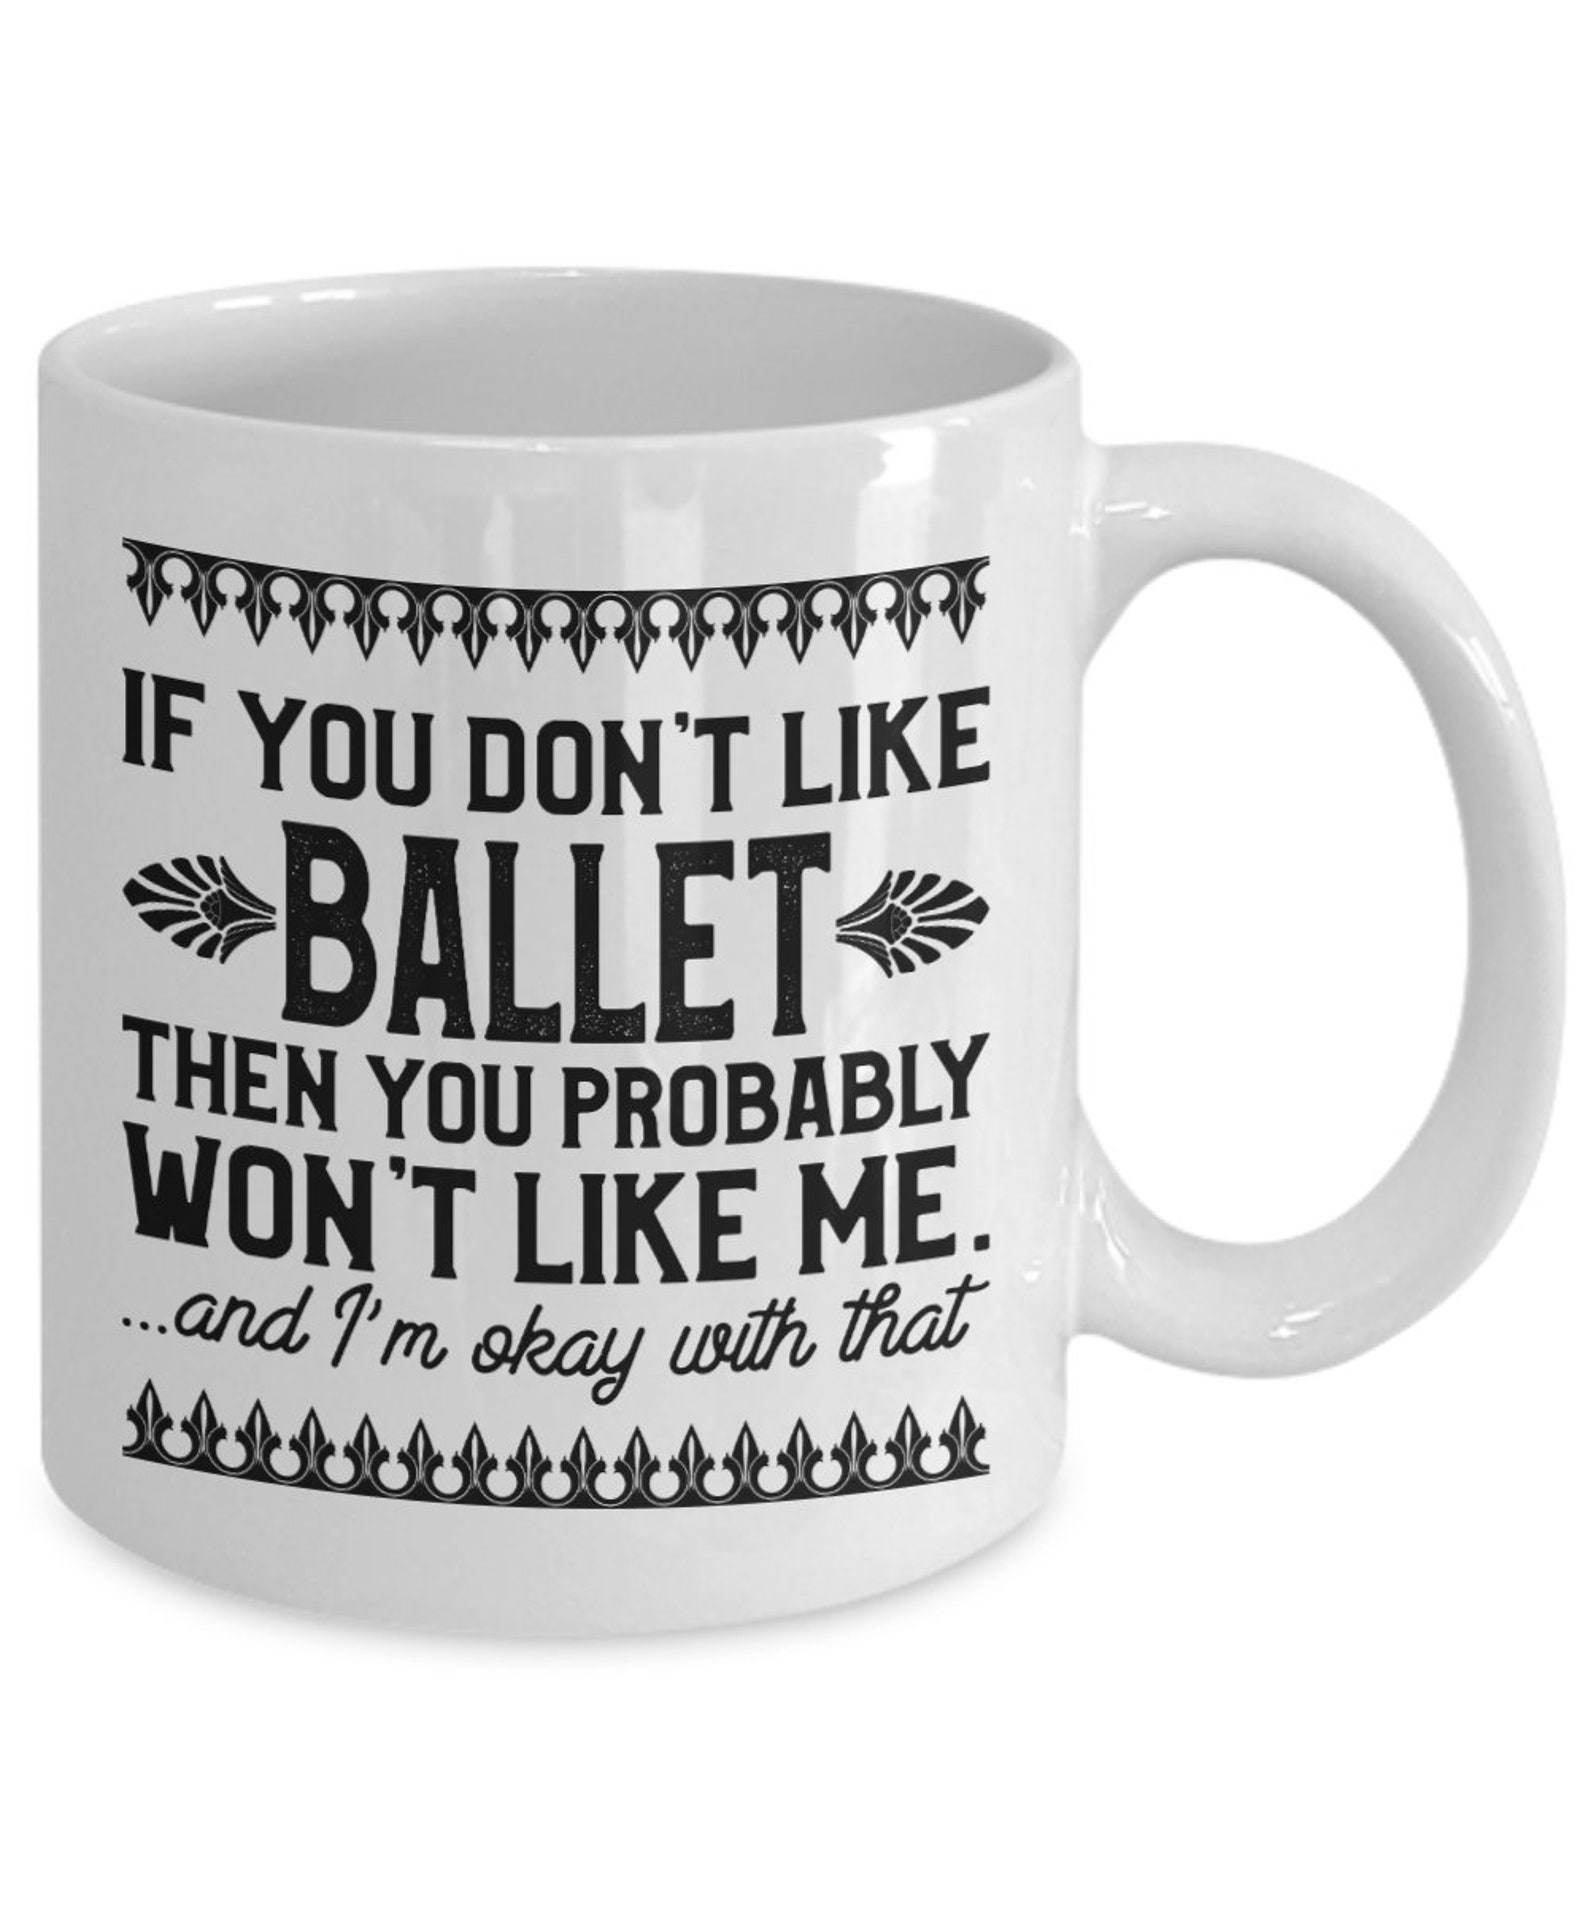 if you don't like ballet mug coffee cup gift idea shoes slippers flats bag